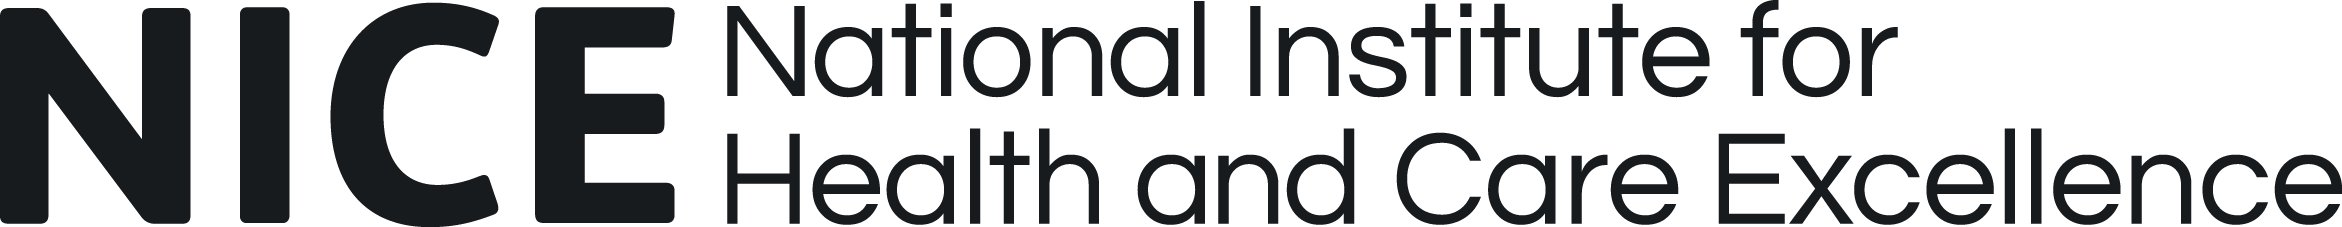 National Institute for Health and Care Excellence